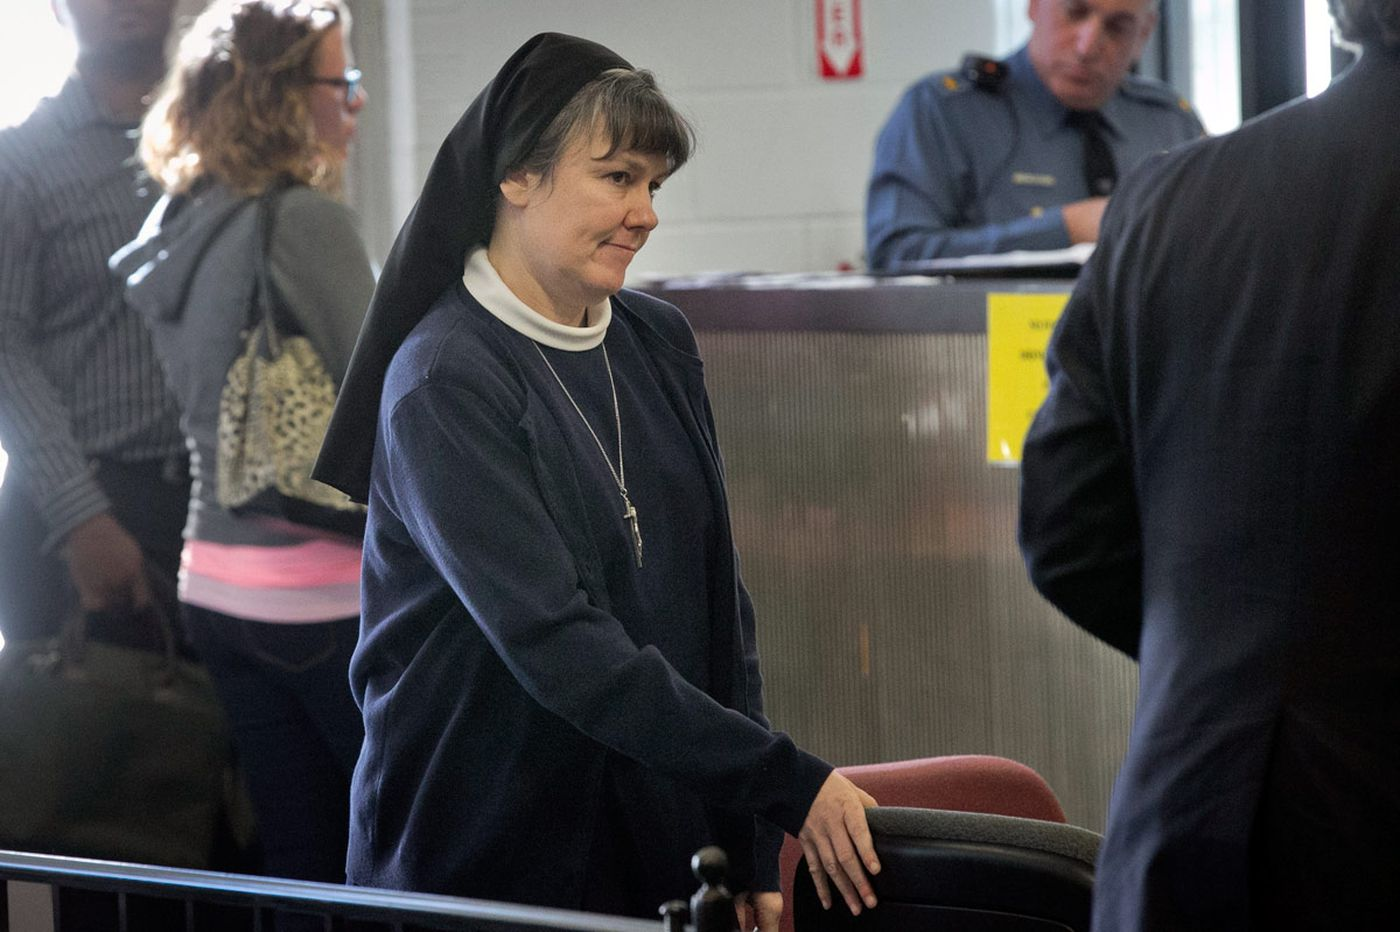 School year over for Philly nun in DUI case